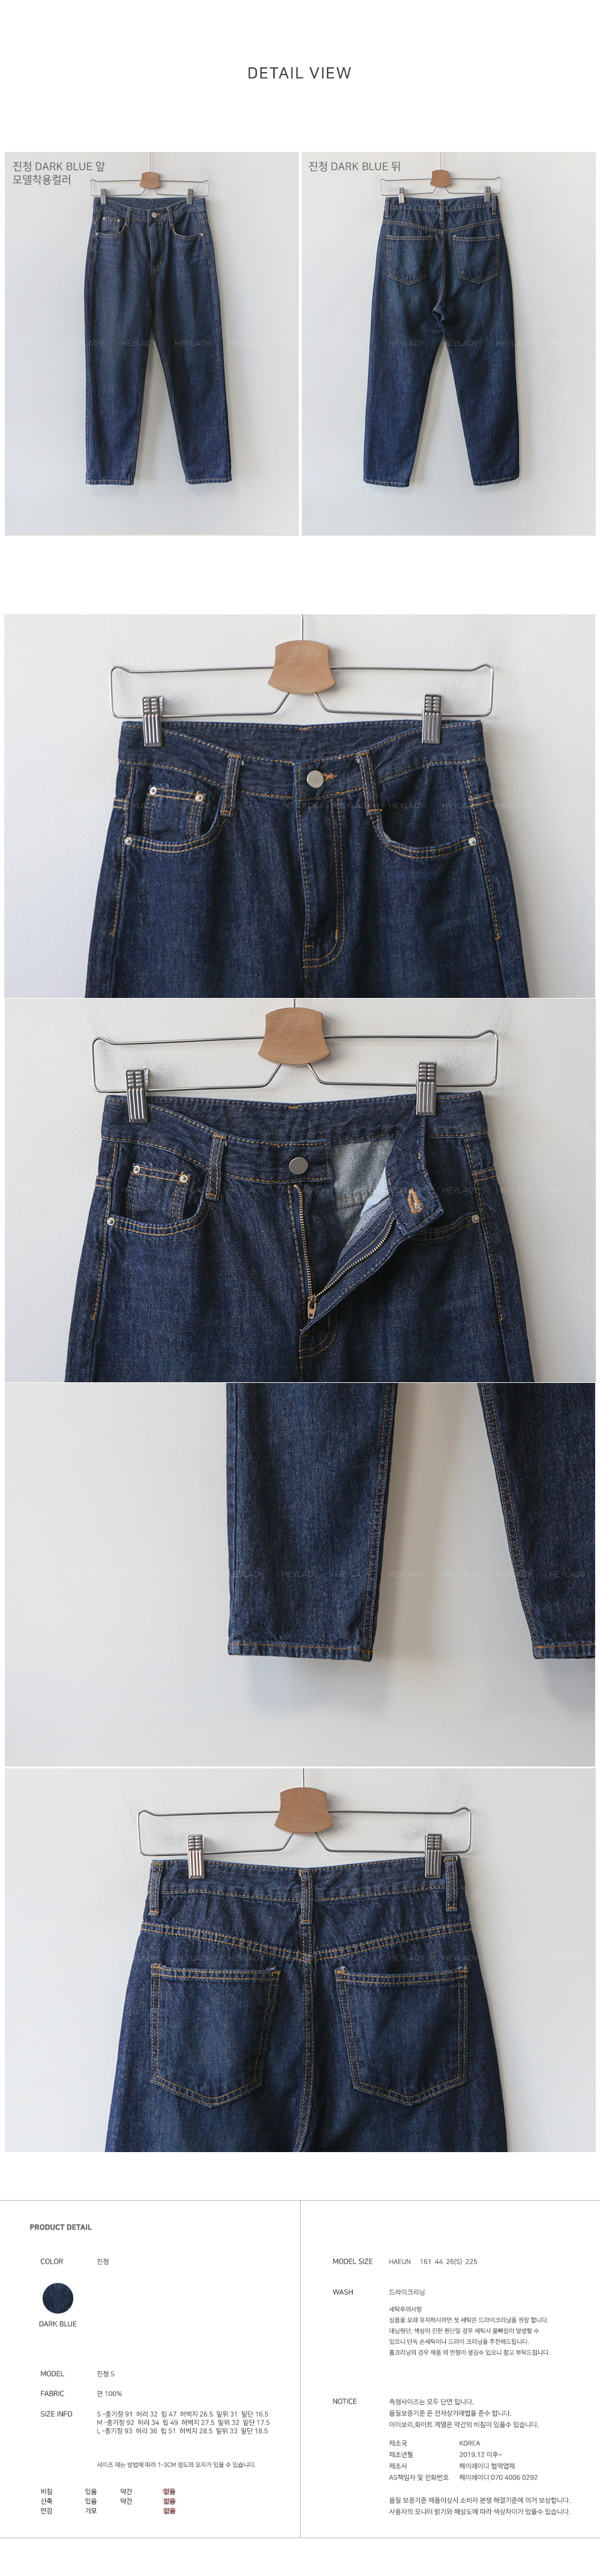 Wedge exhaust denim pants